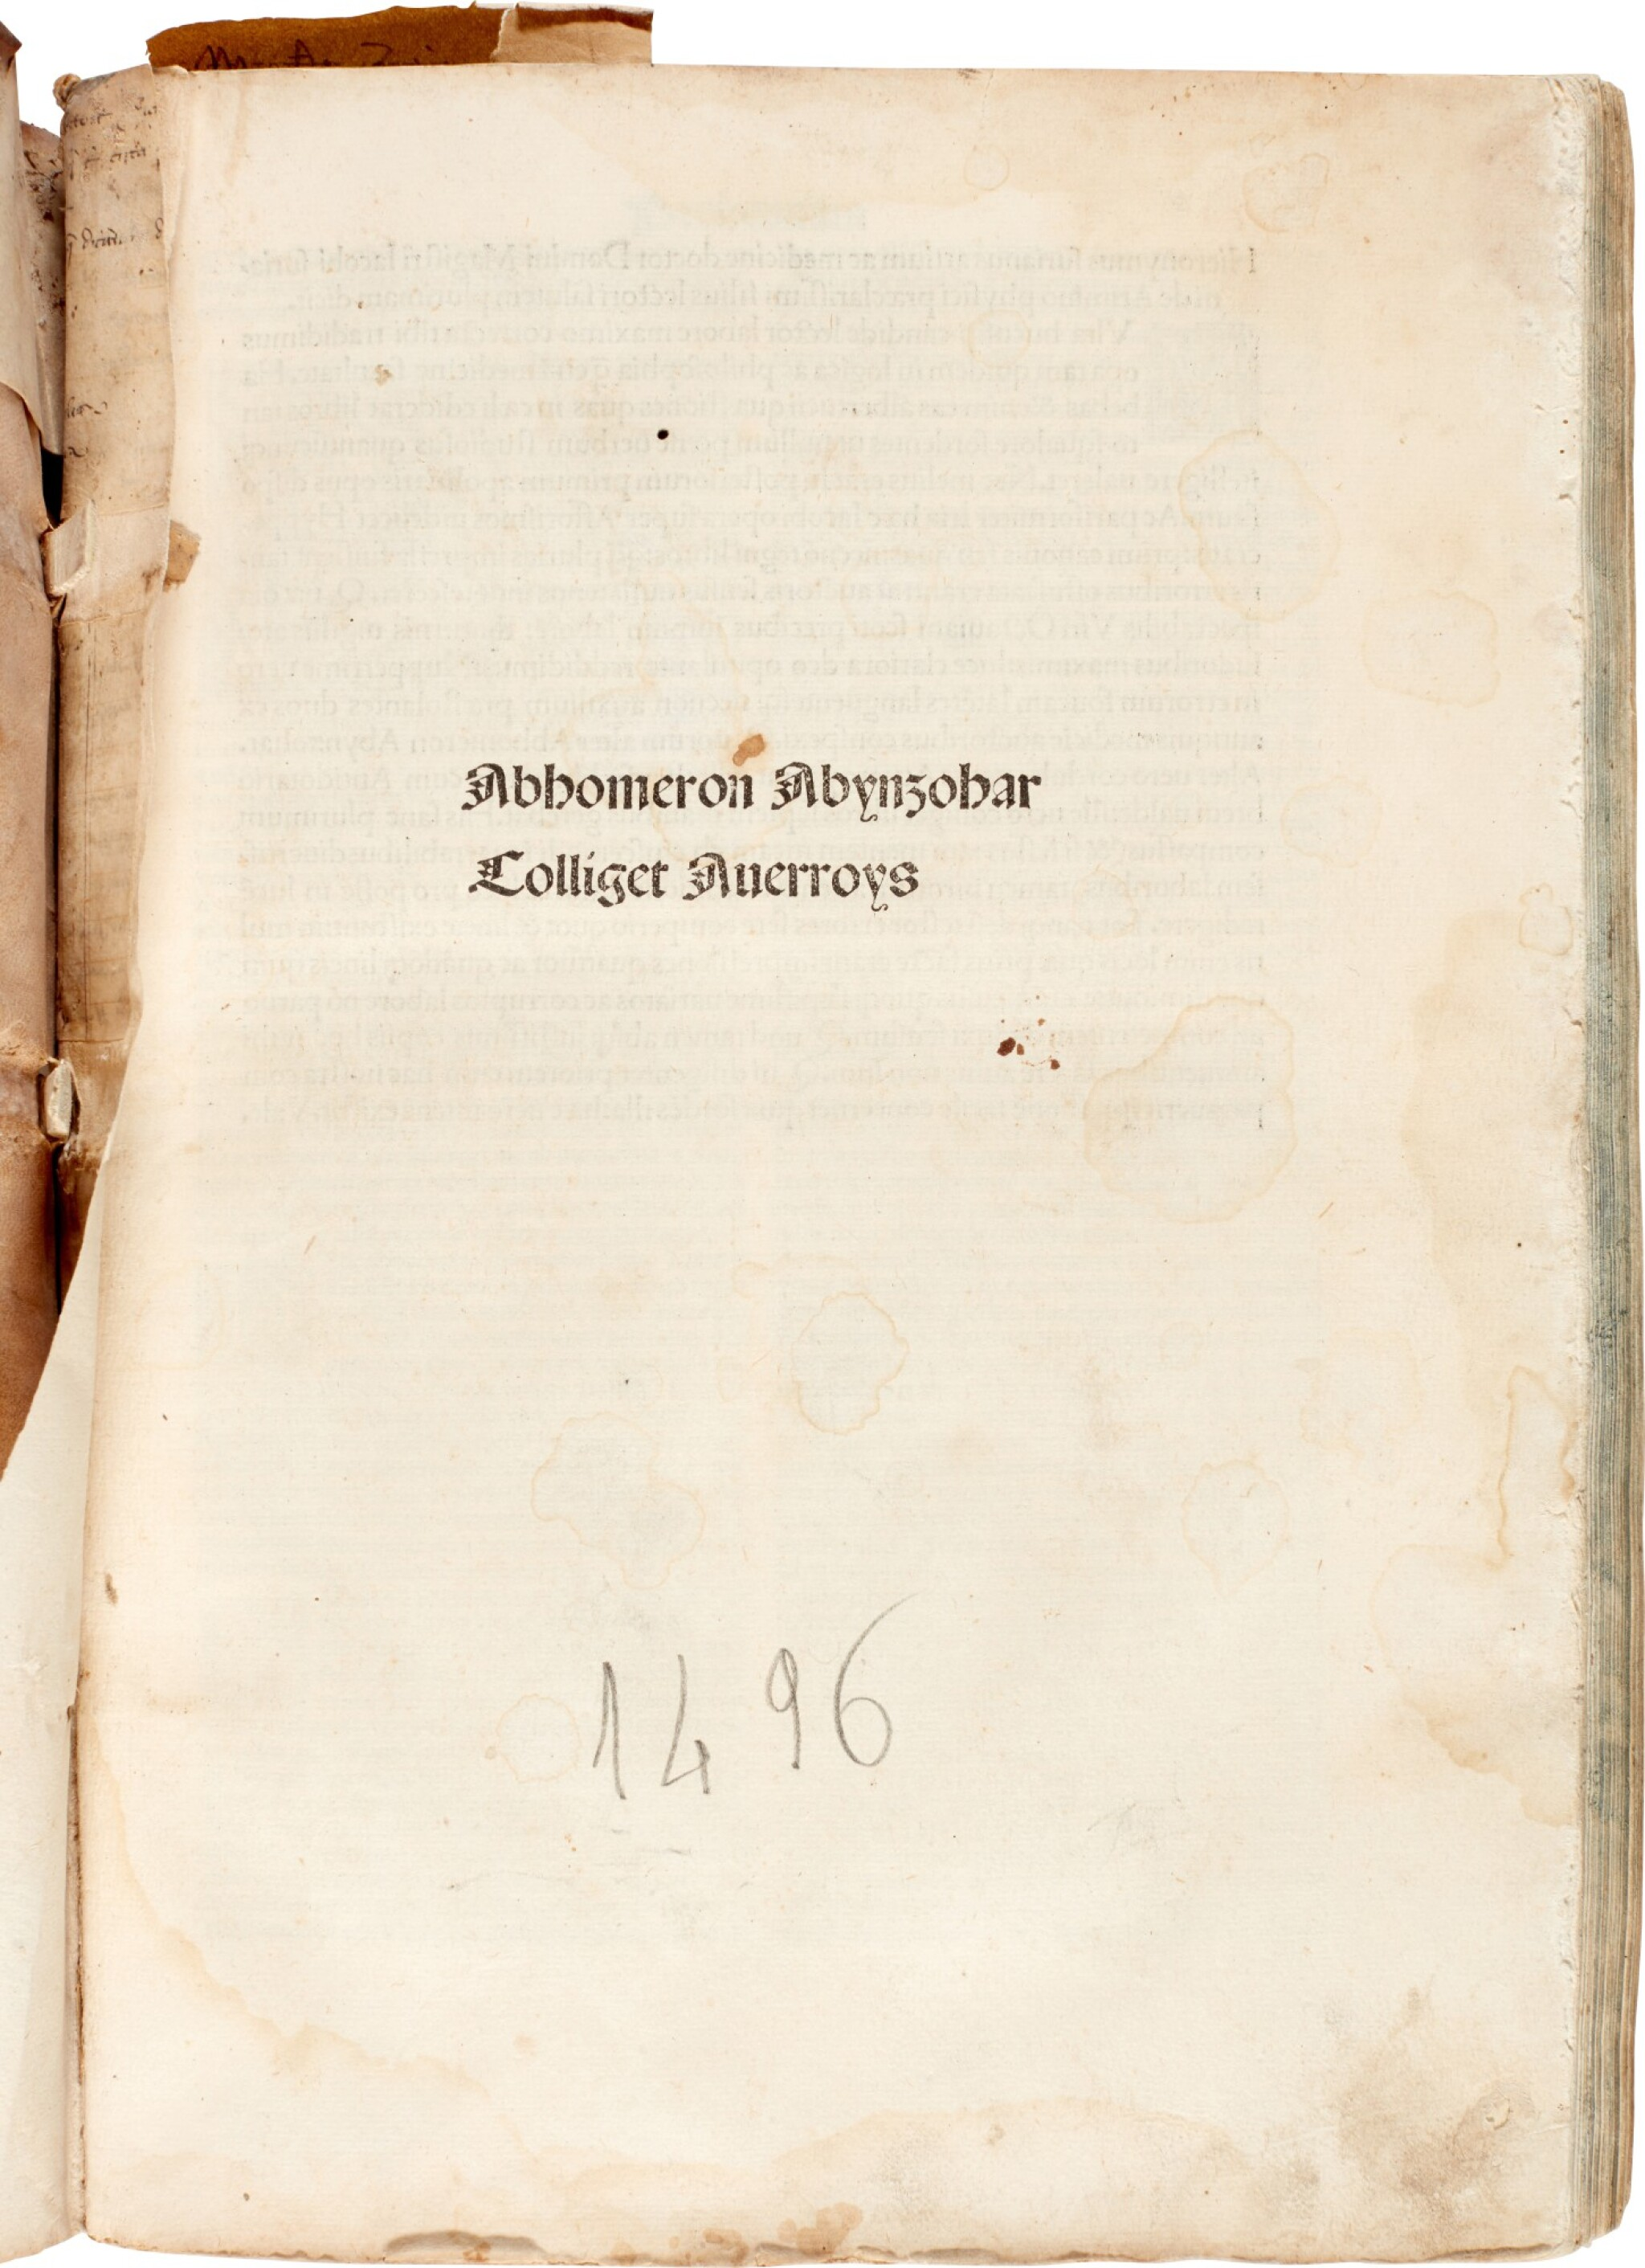 View full screen - View 1 of Lot 2. Avenzohar | Liber teisir, Venice, 1496, limp vellum, and other works.